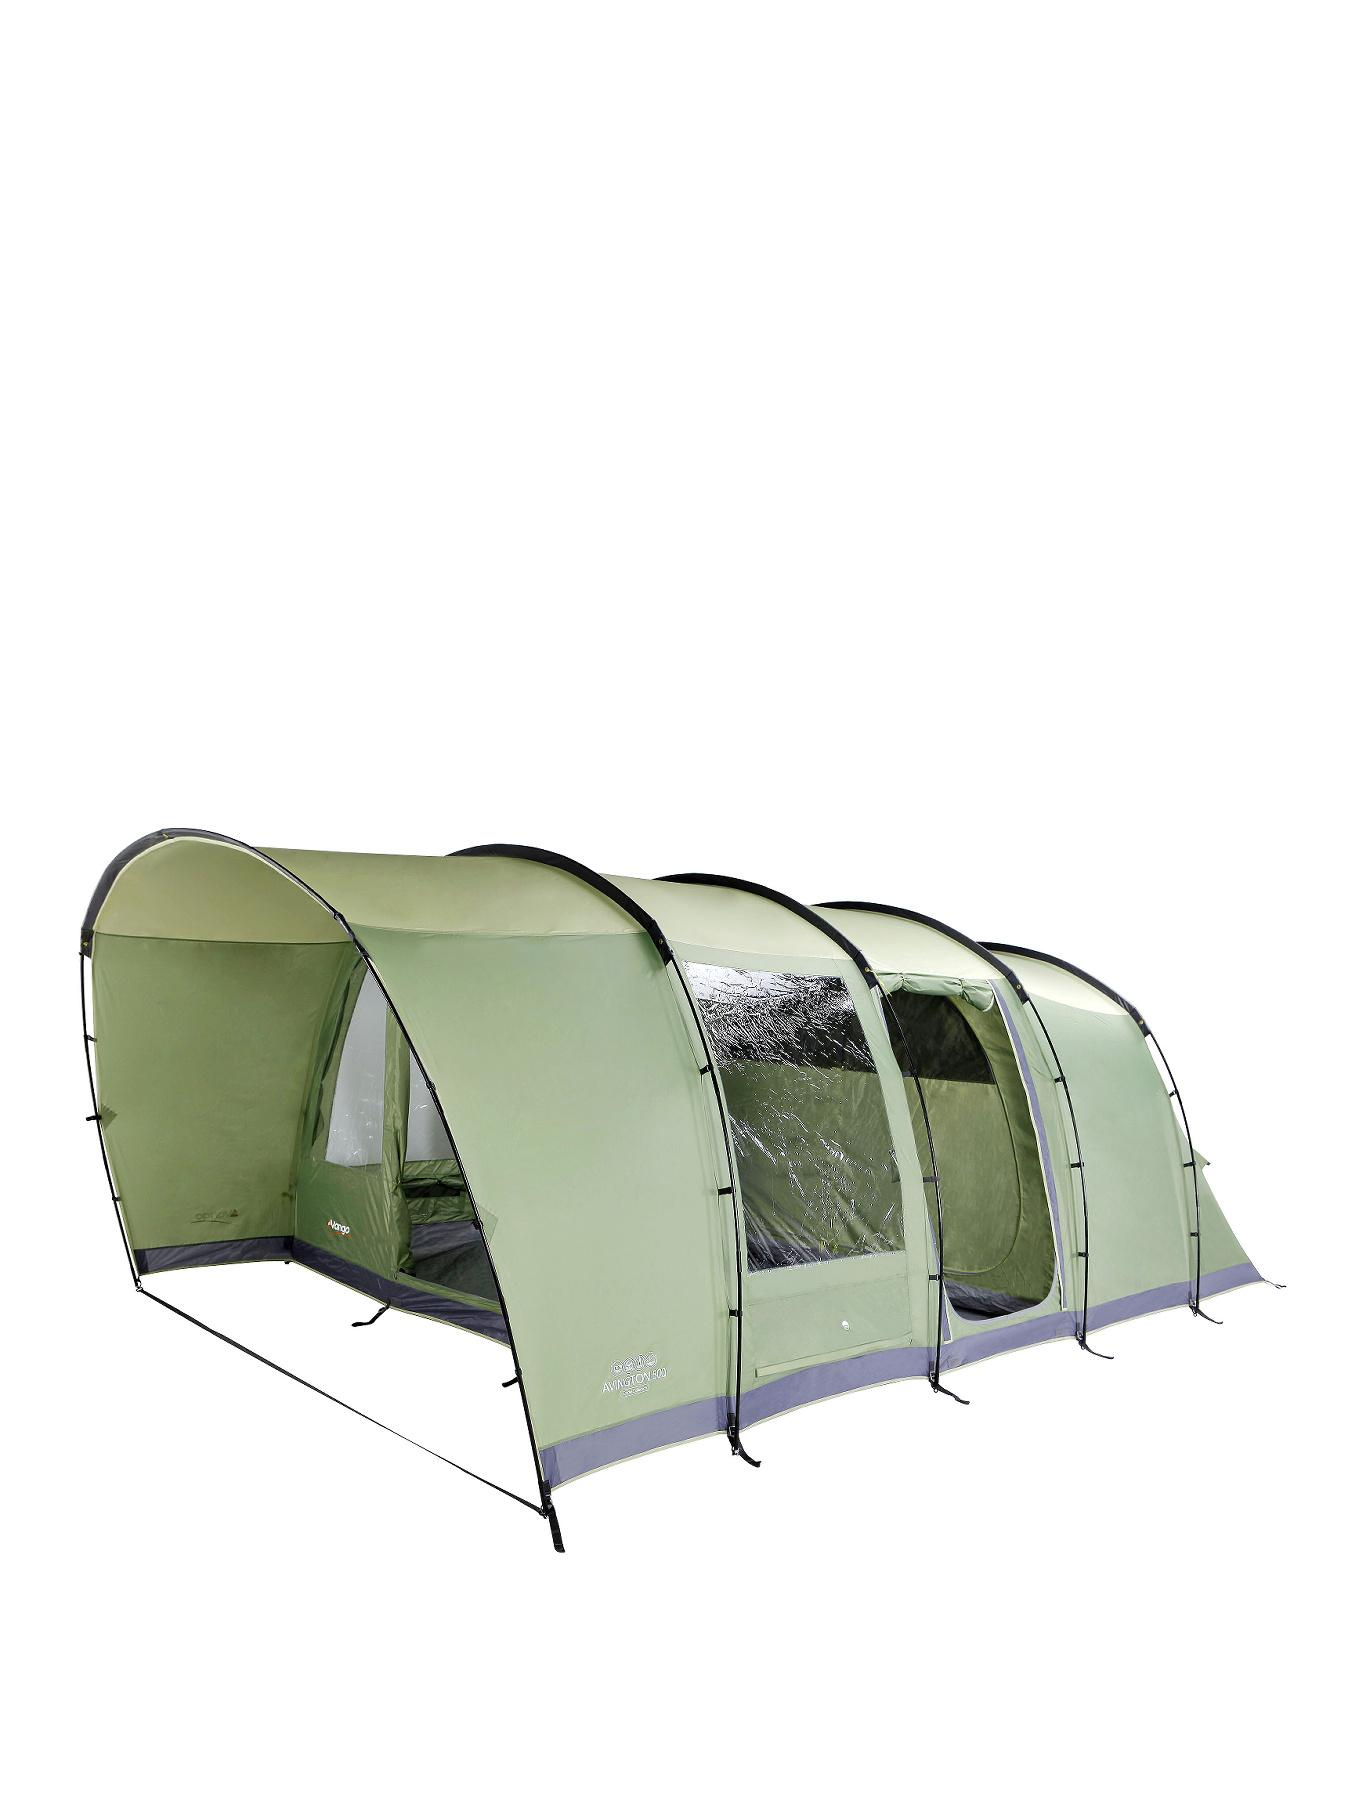 Vango Avington 500 5-Person Tent